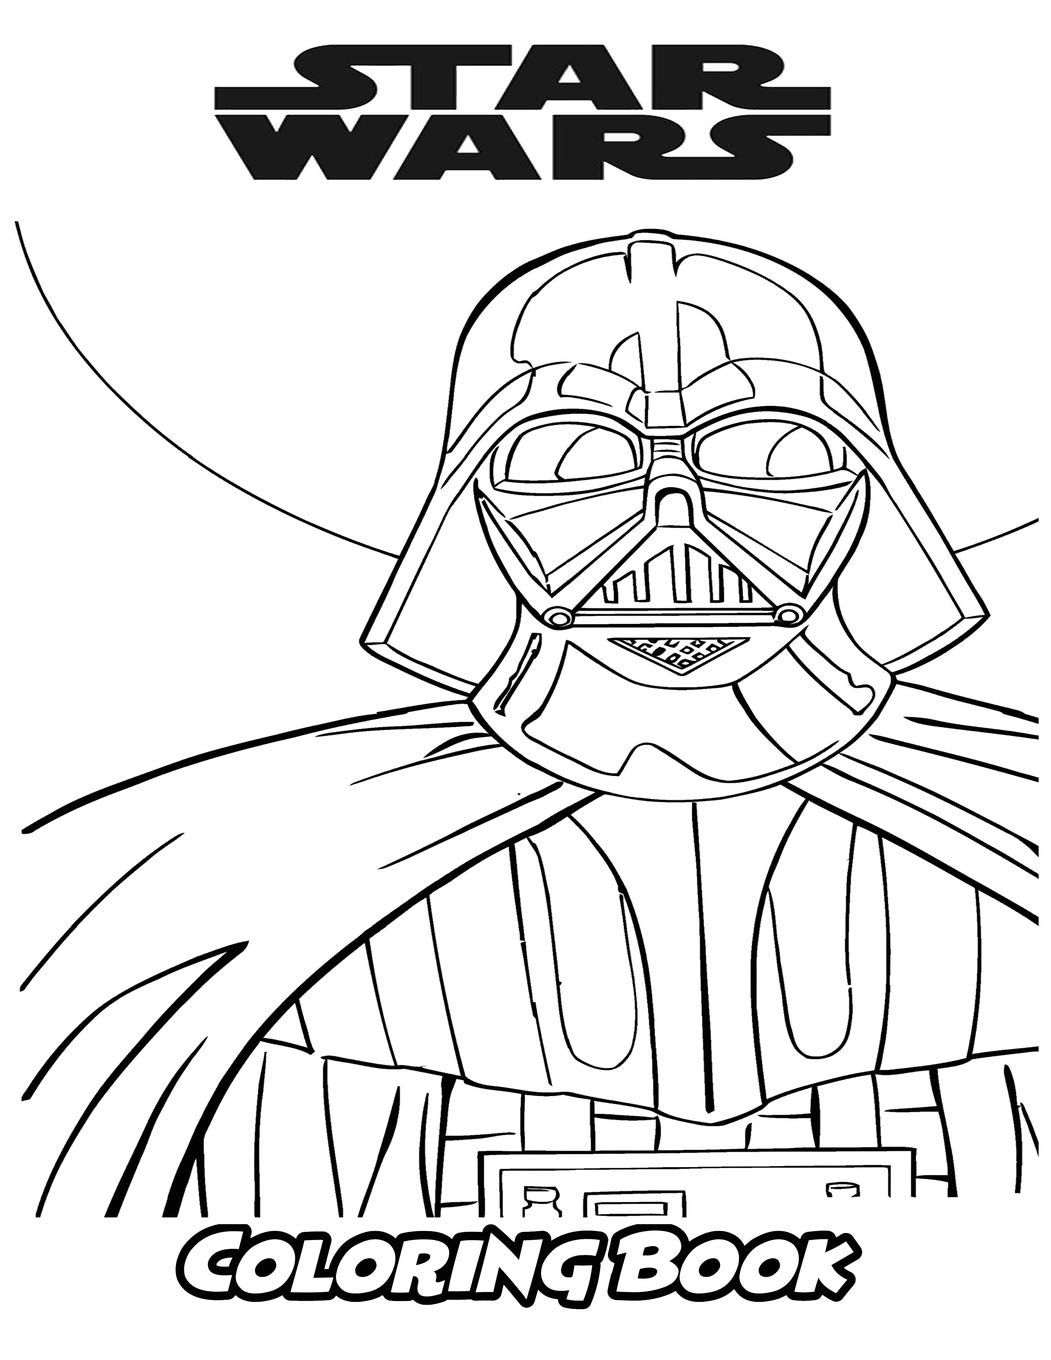 Star Wars Coloring Book Coloring Book For Kids And Adults